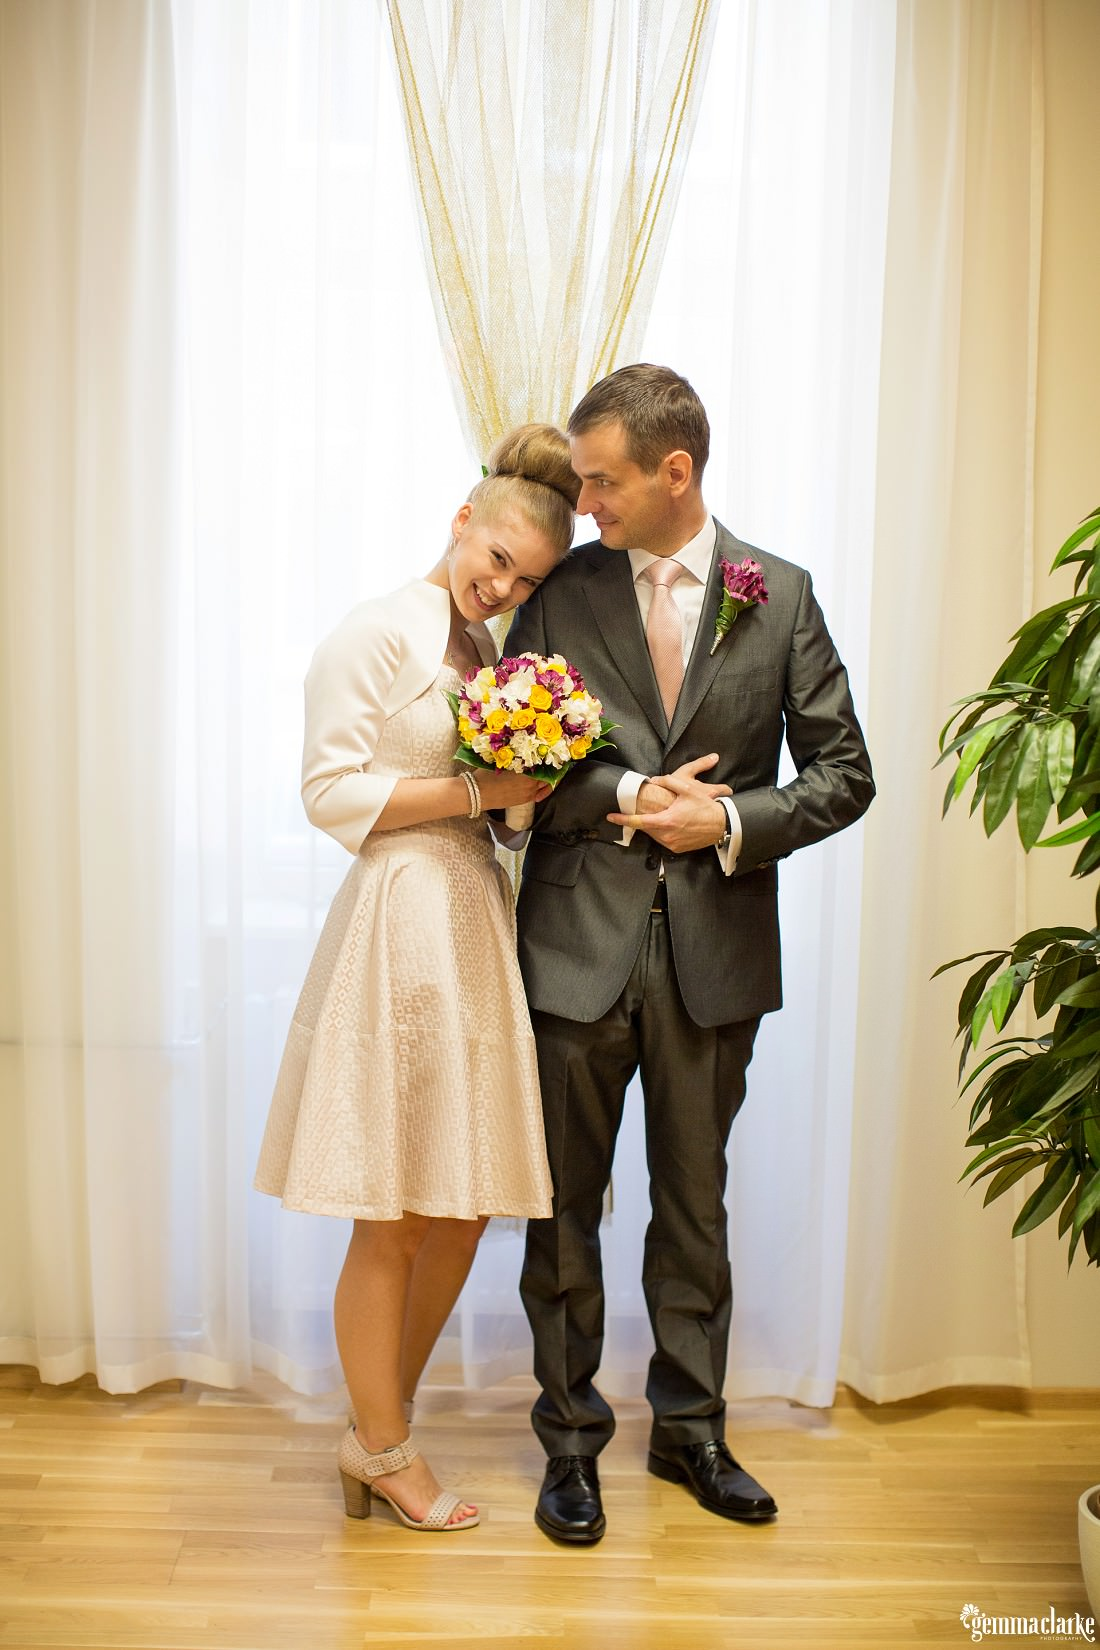 gemmaclarkephotography_elopement-in-europe_small-wedding-tallinn_teele-and-kristen_0013a